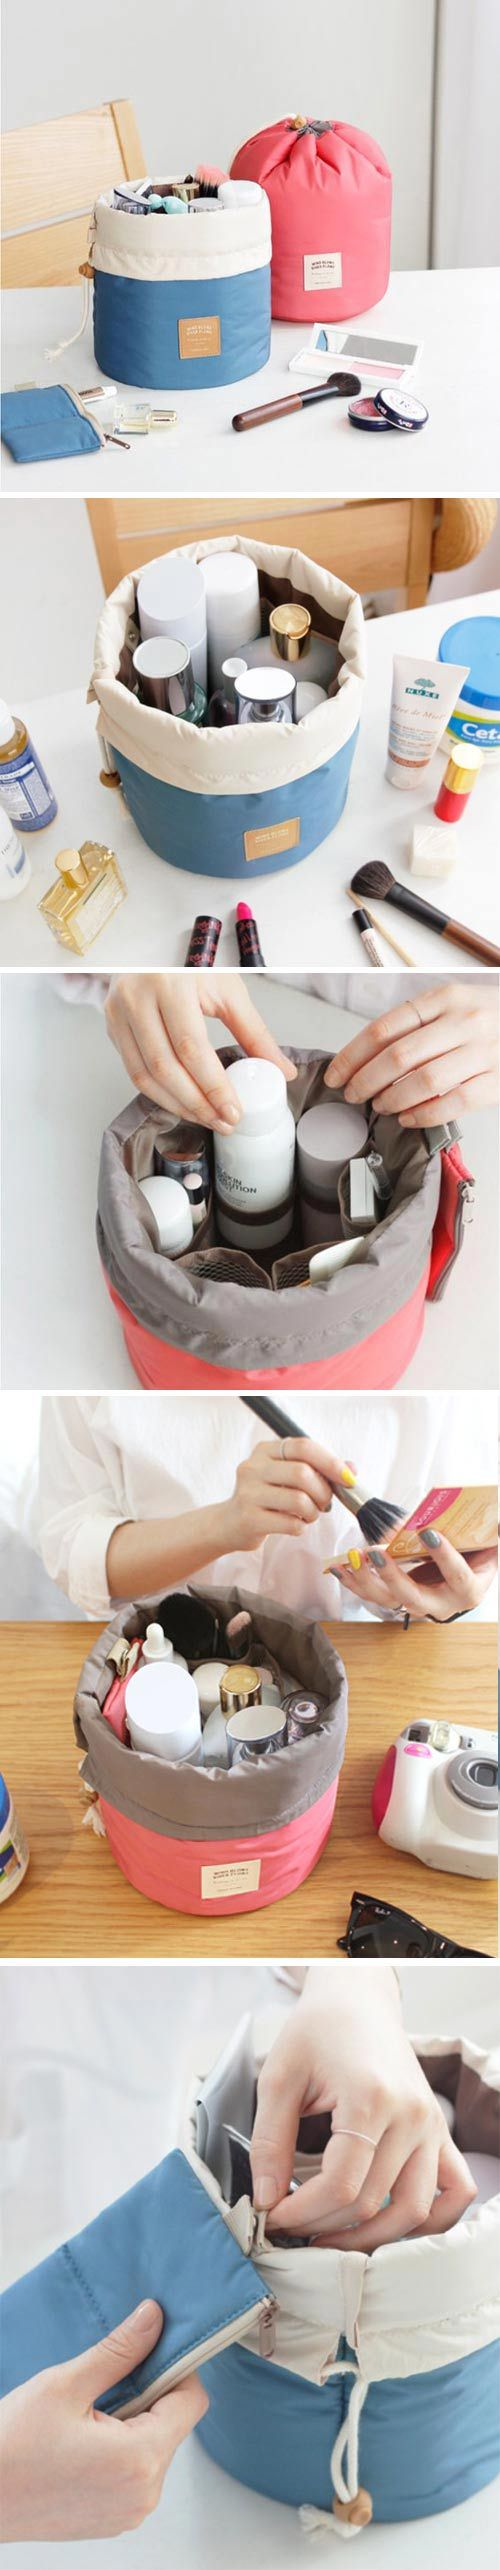 21 Travel Hacks You Should Know This Holiday Season We just made all of your favorite,a world tour. Only $19.99 Now! Cupshe World Tour Cosmetic Pouch is an absolute necessity to bring with you on all your travels! Let's get started on a stress free & organized trip at Cupshe.com !